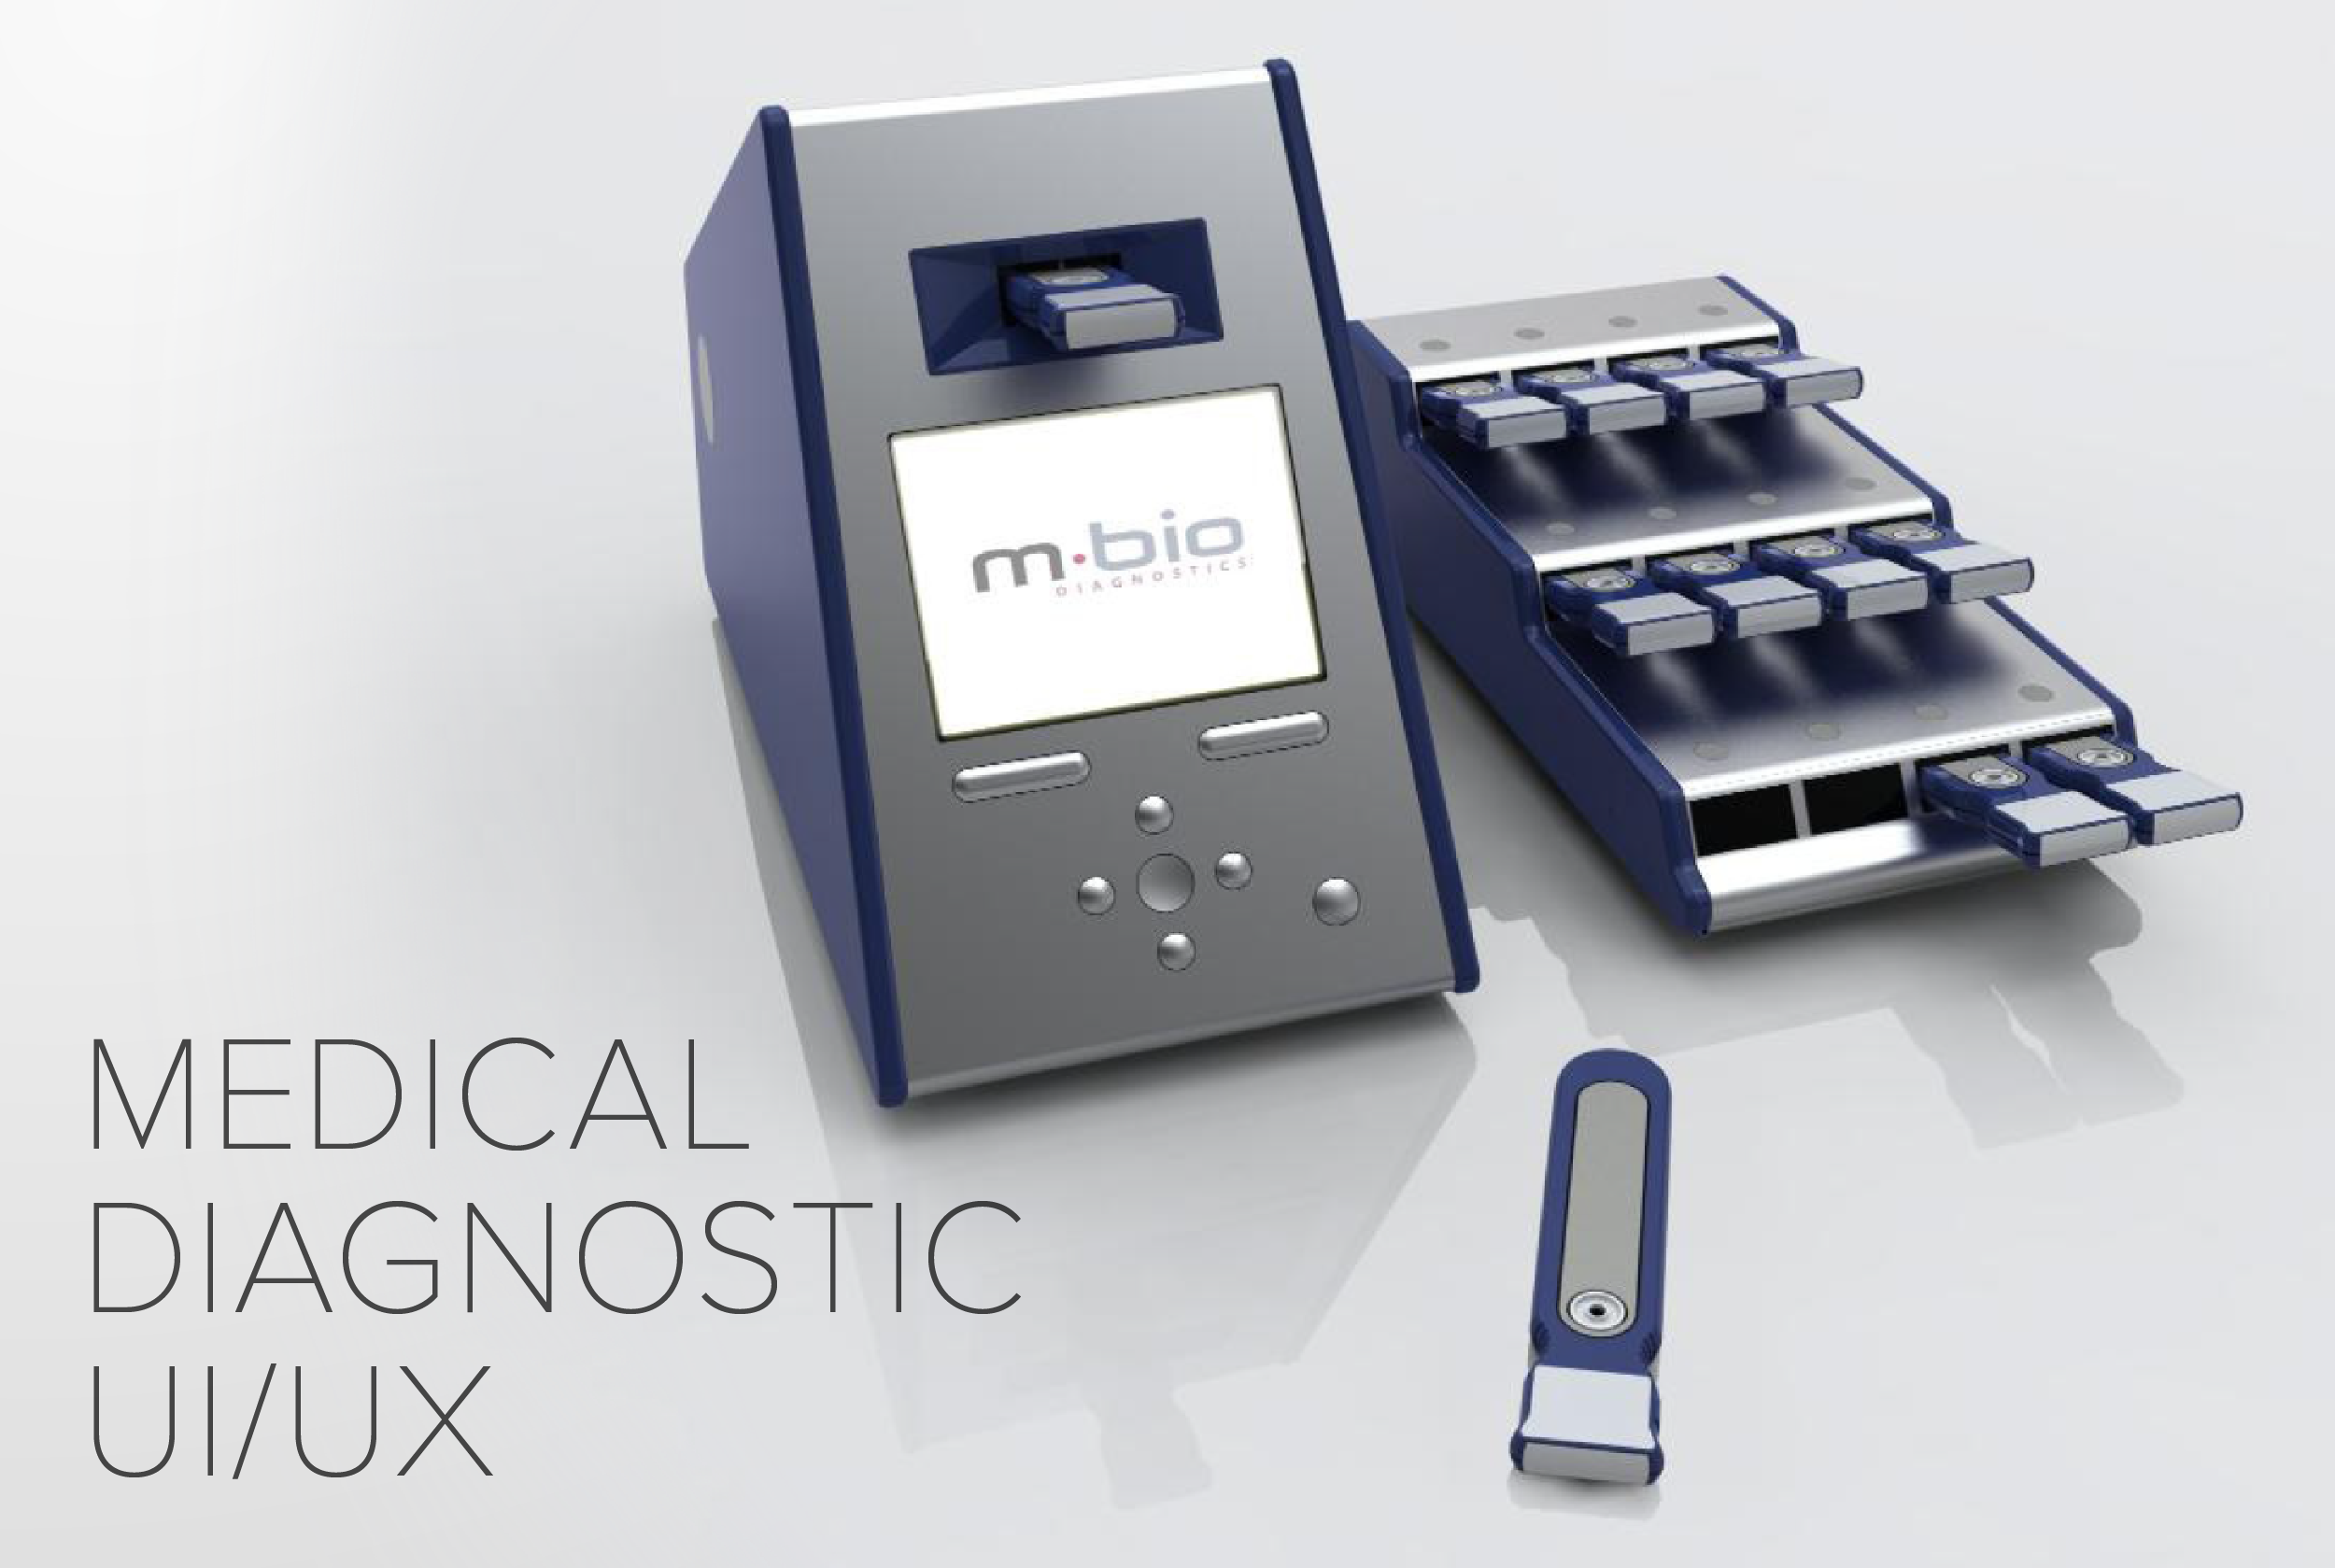 mBio Diagnostic Device